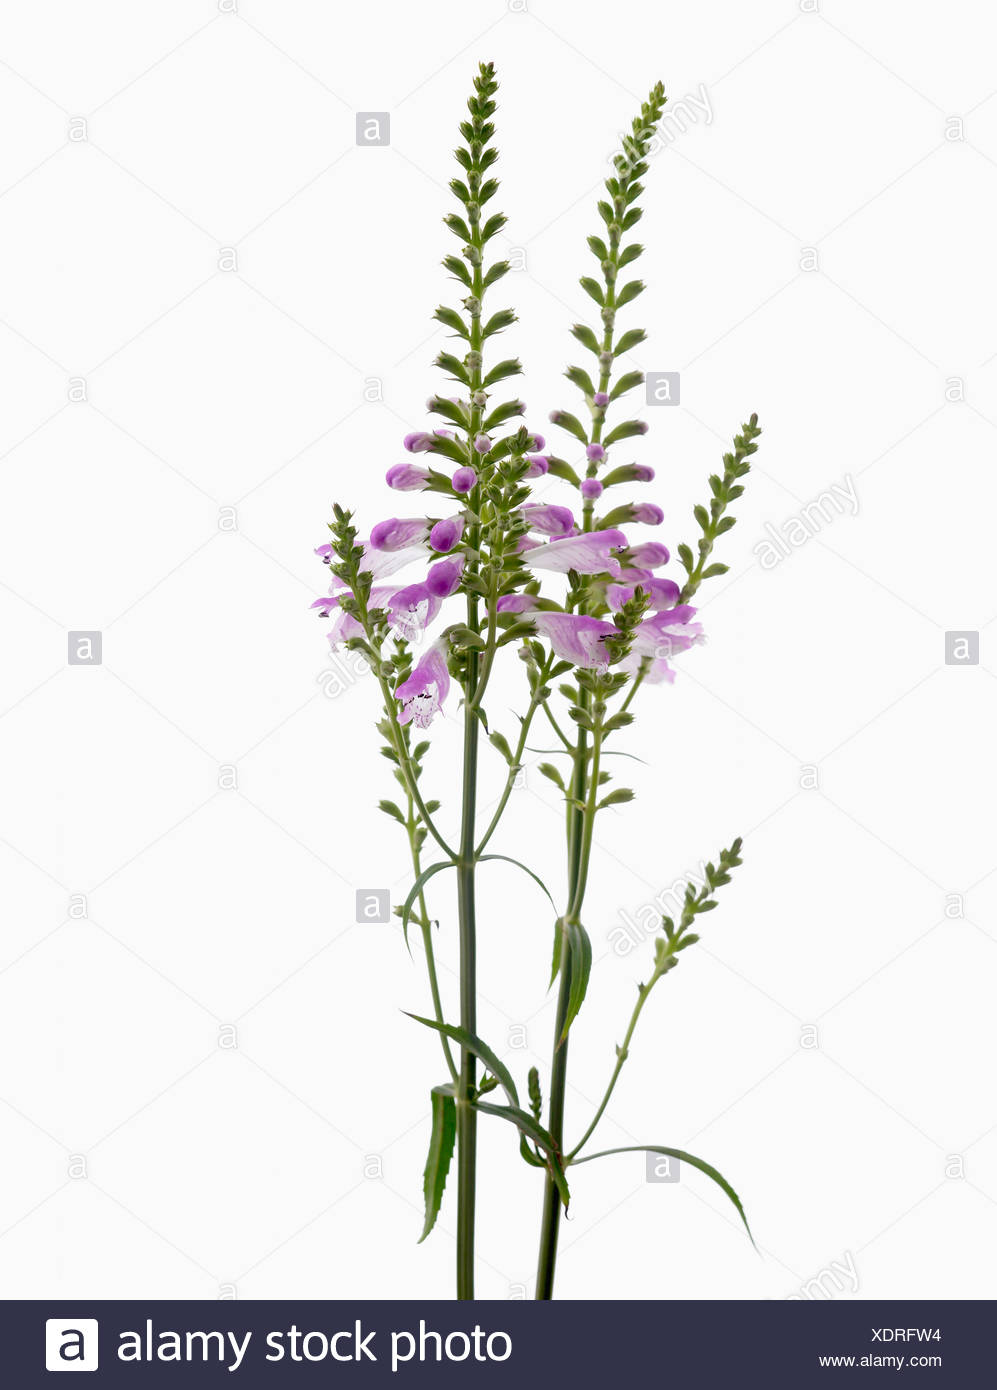 Physostegia virginiana, Obedient plant with purple flowers on upright stems against a white background. - Stock Image